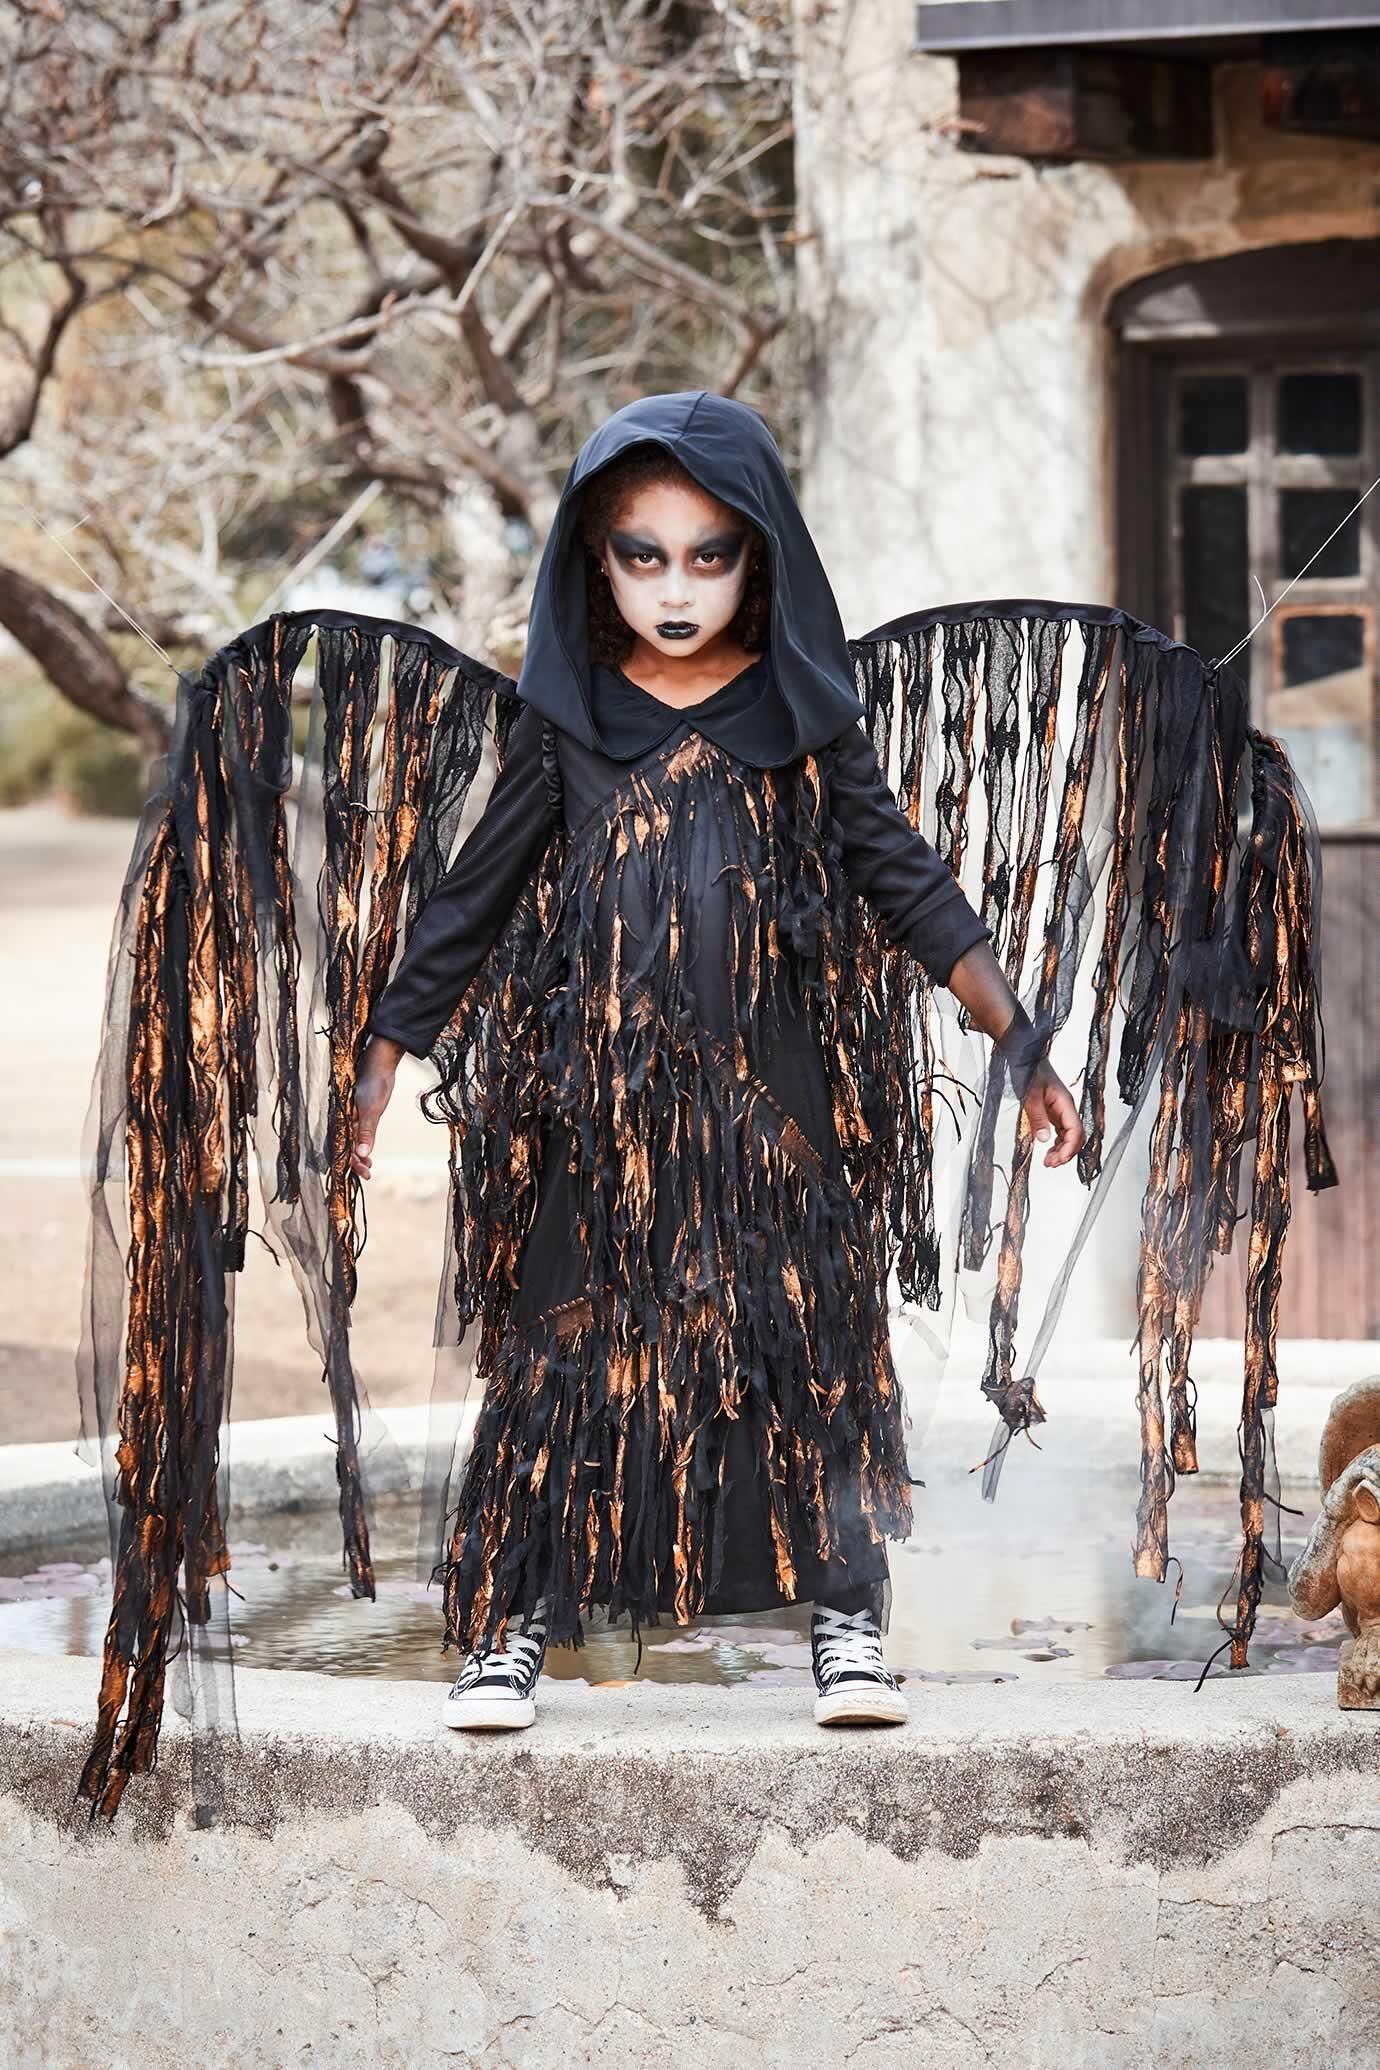 angel of death costume for kids in 2018 | all things ava | pinterest